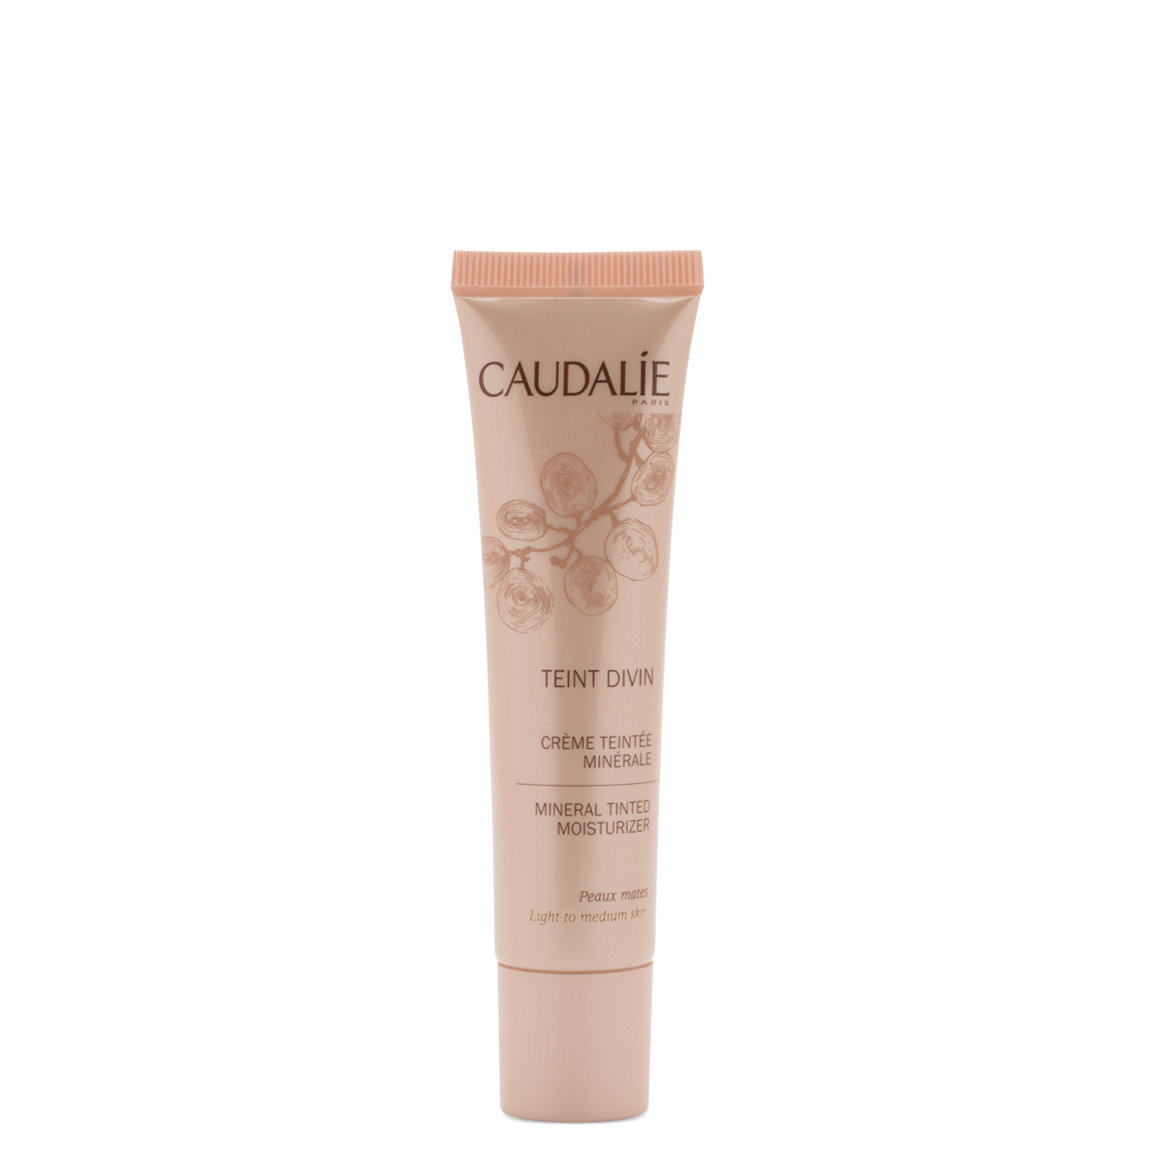 Caudalie Teint Divin Soleil Divin Mineral Tinted Moisturizer  Light alternative view 1 - product swatch.